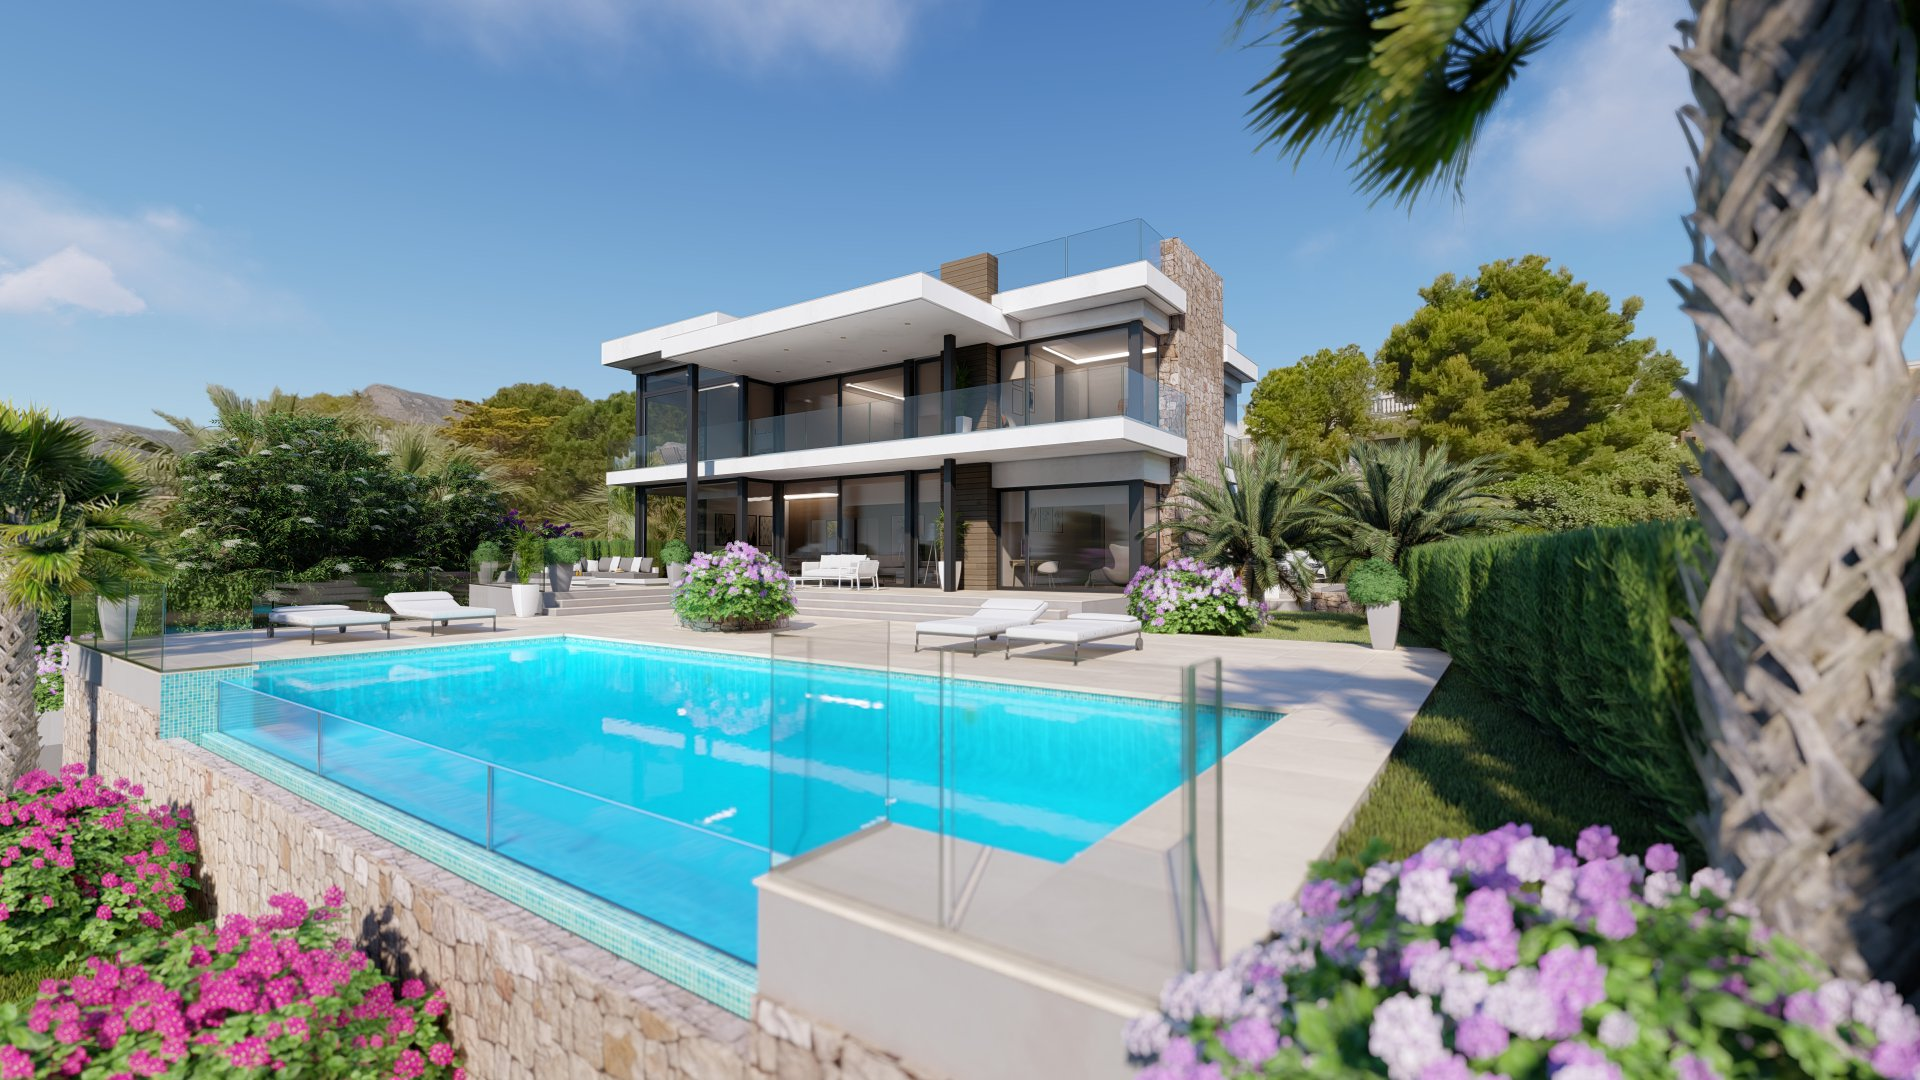 A new luxury house in Calpe close to sea and amenities